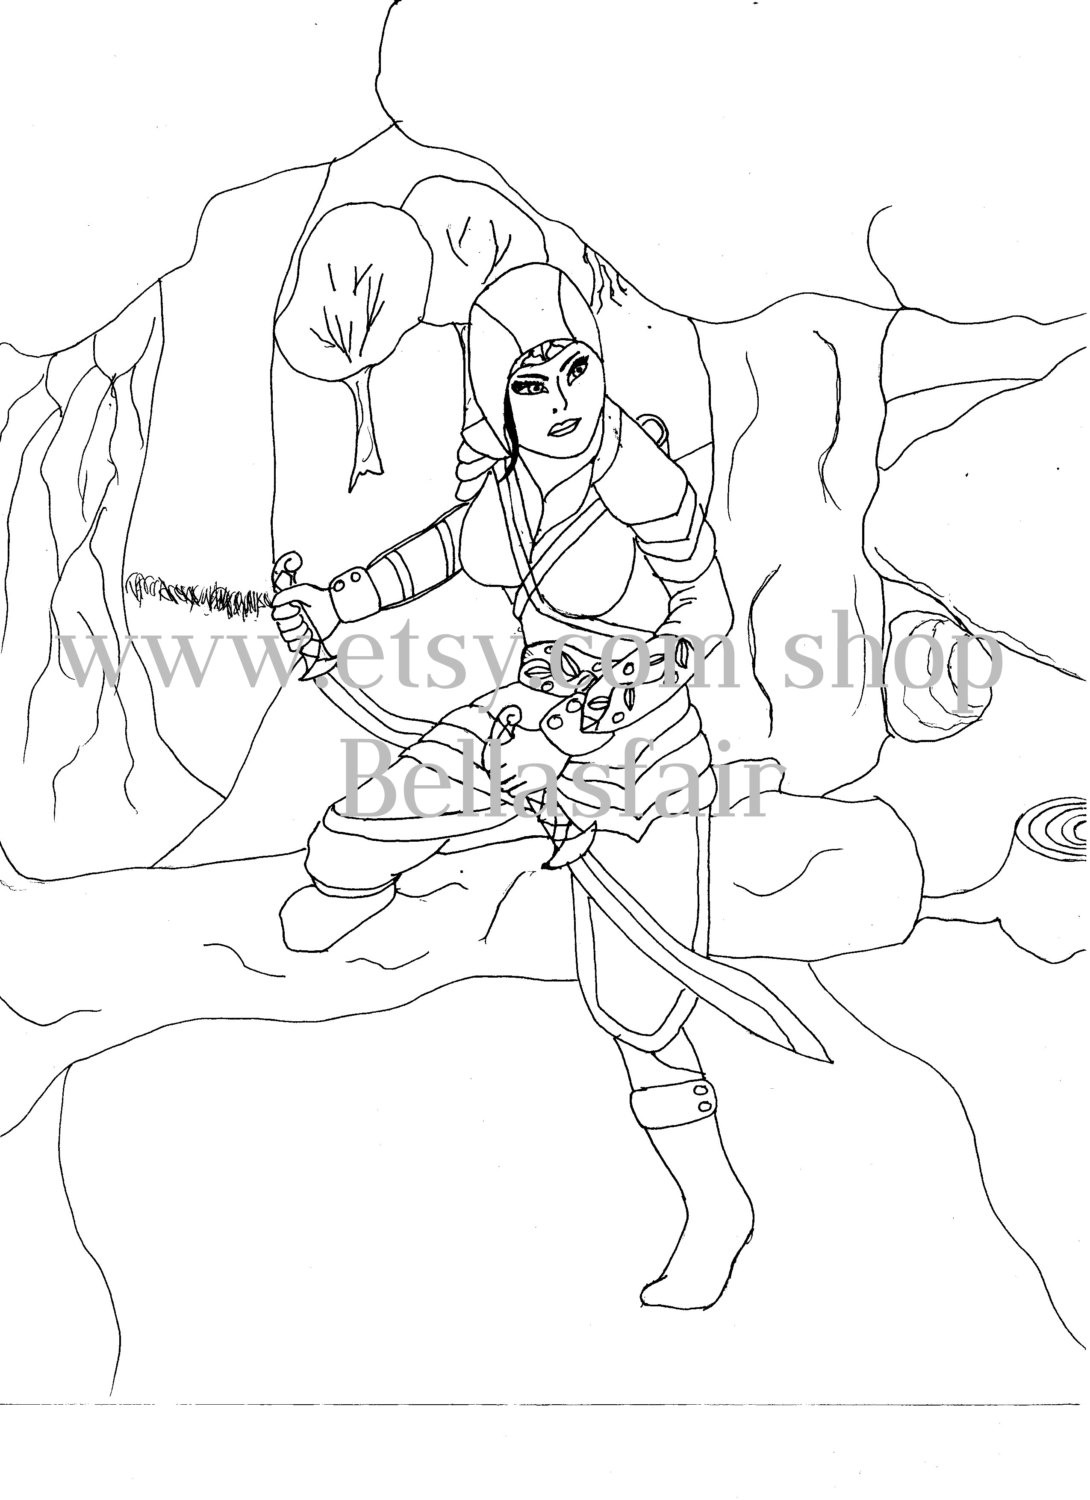 Drawn warrior detailed Item? this woman Like warrior